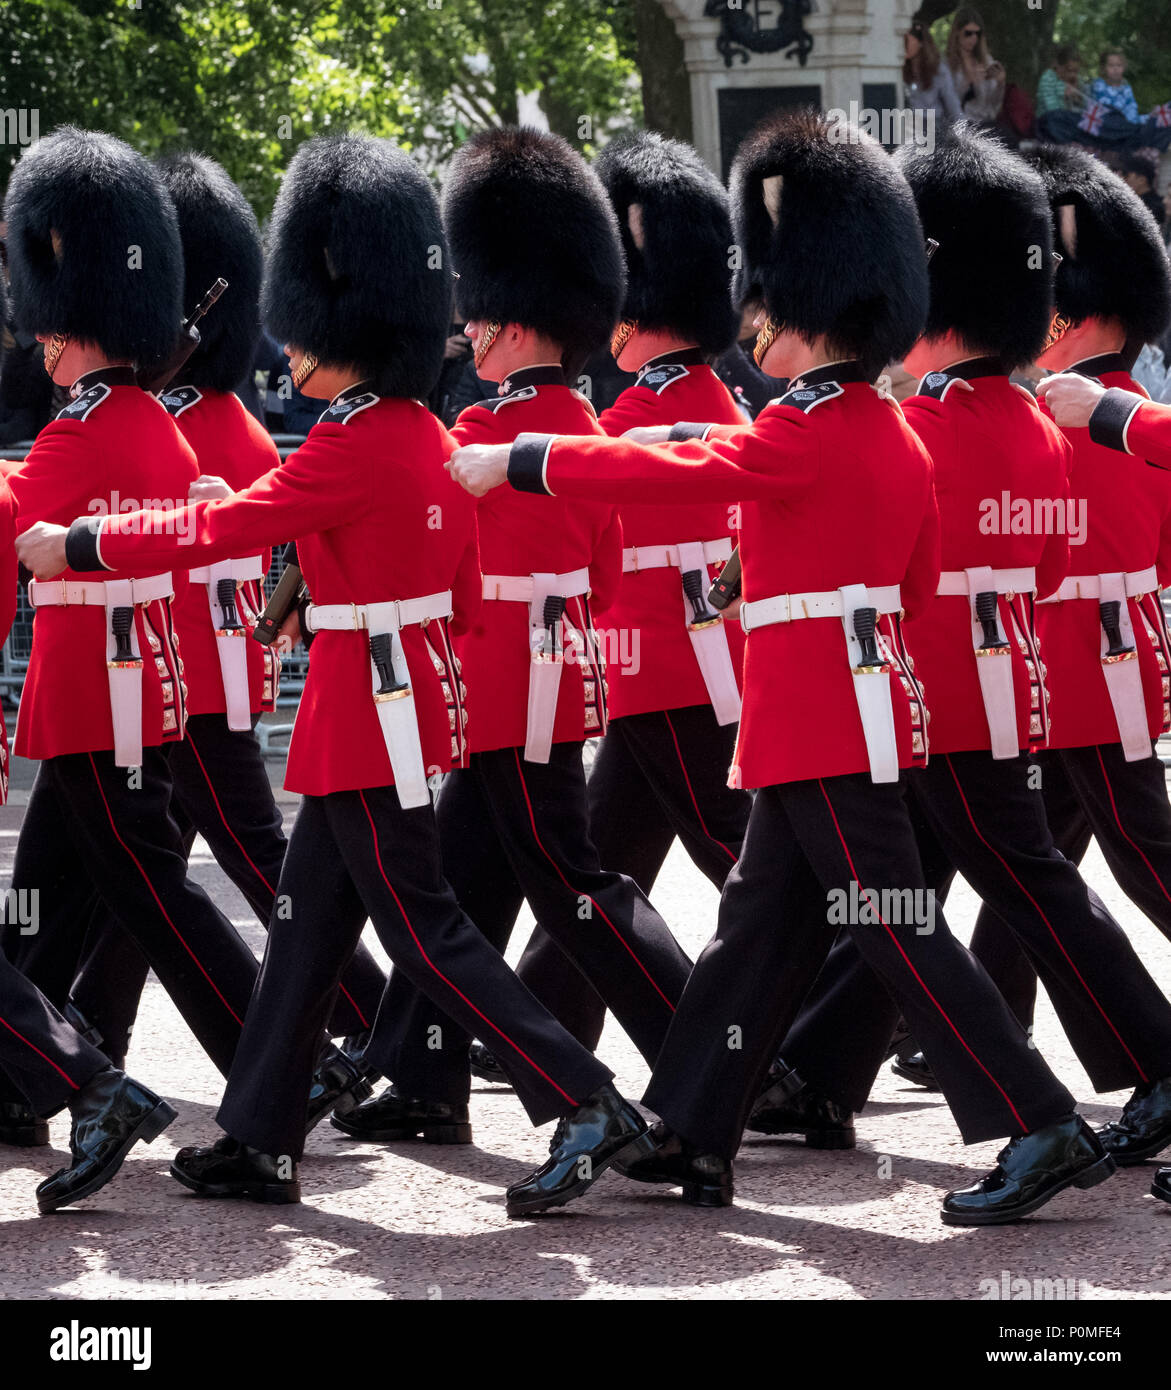 Guardsmen and women march down the The Mall, outside Buckingham Palace during Trooping the Colour military parade marking Queen Elizabeth's birthday. - Stock Image